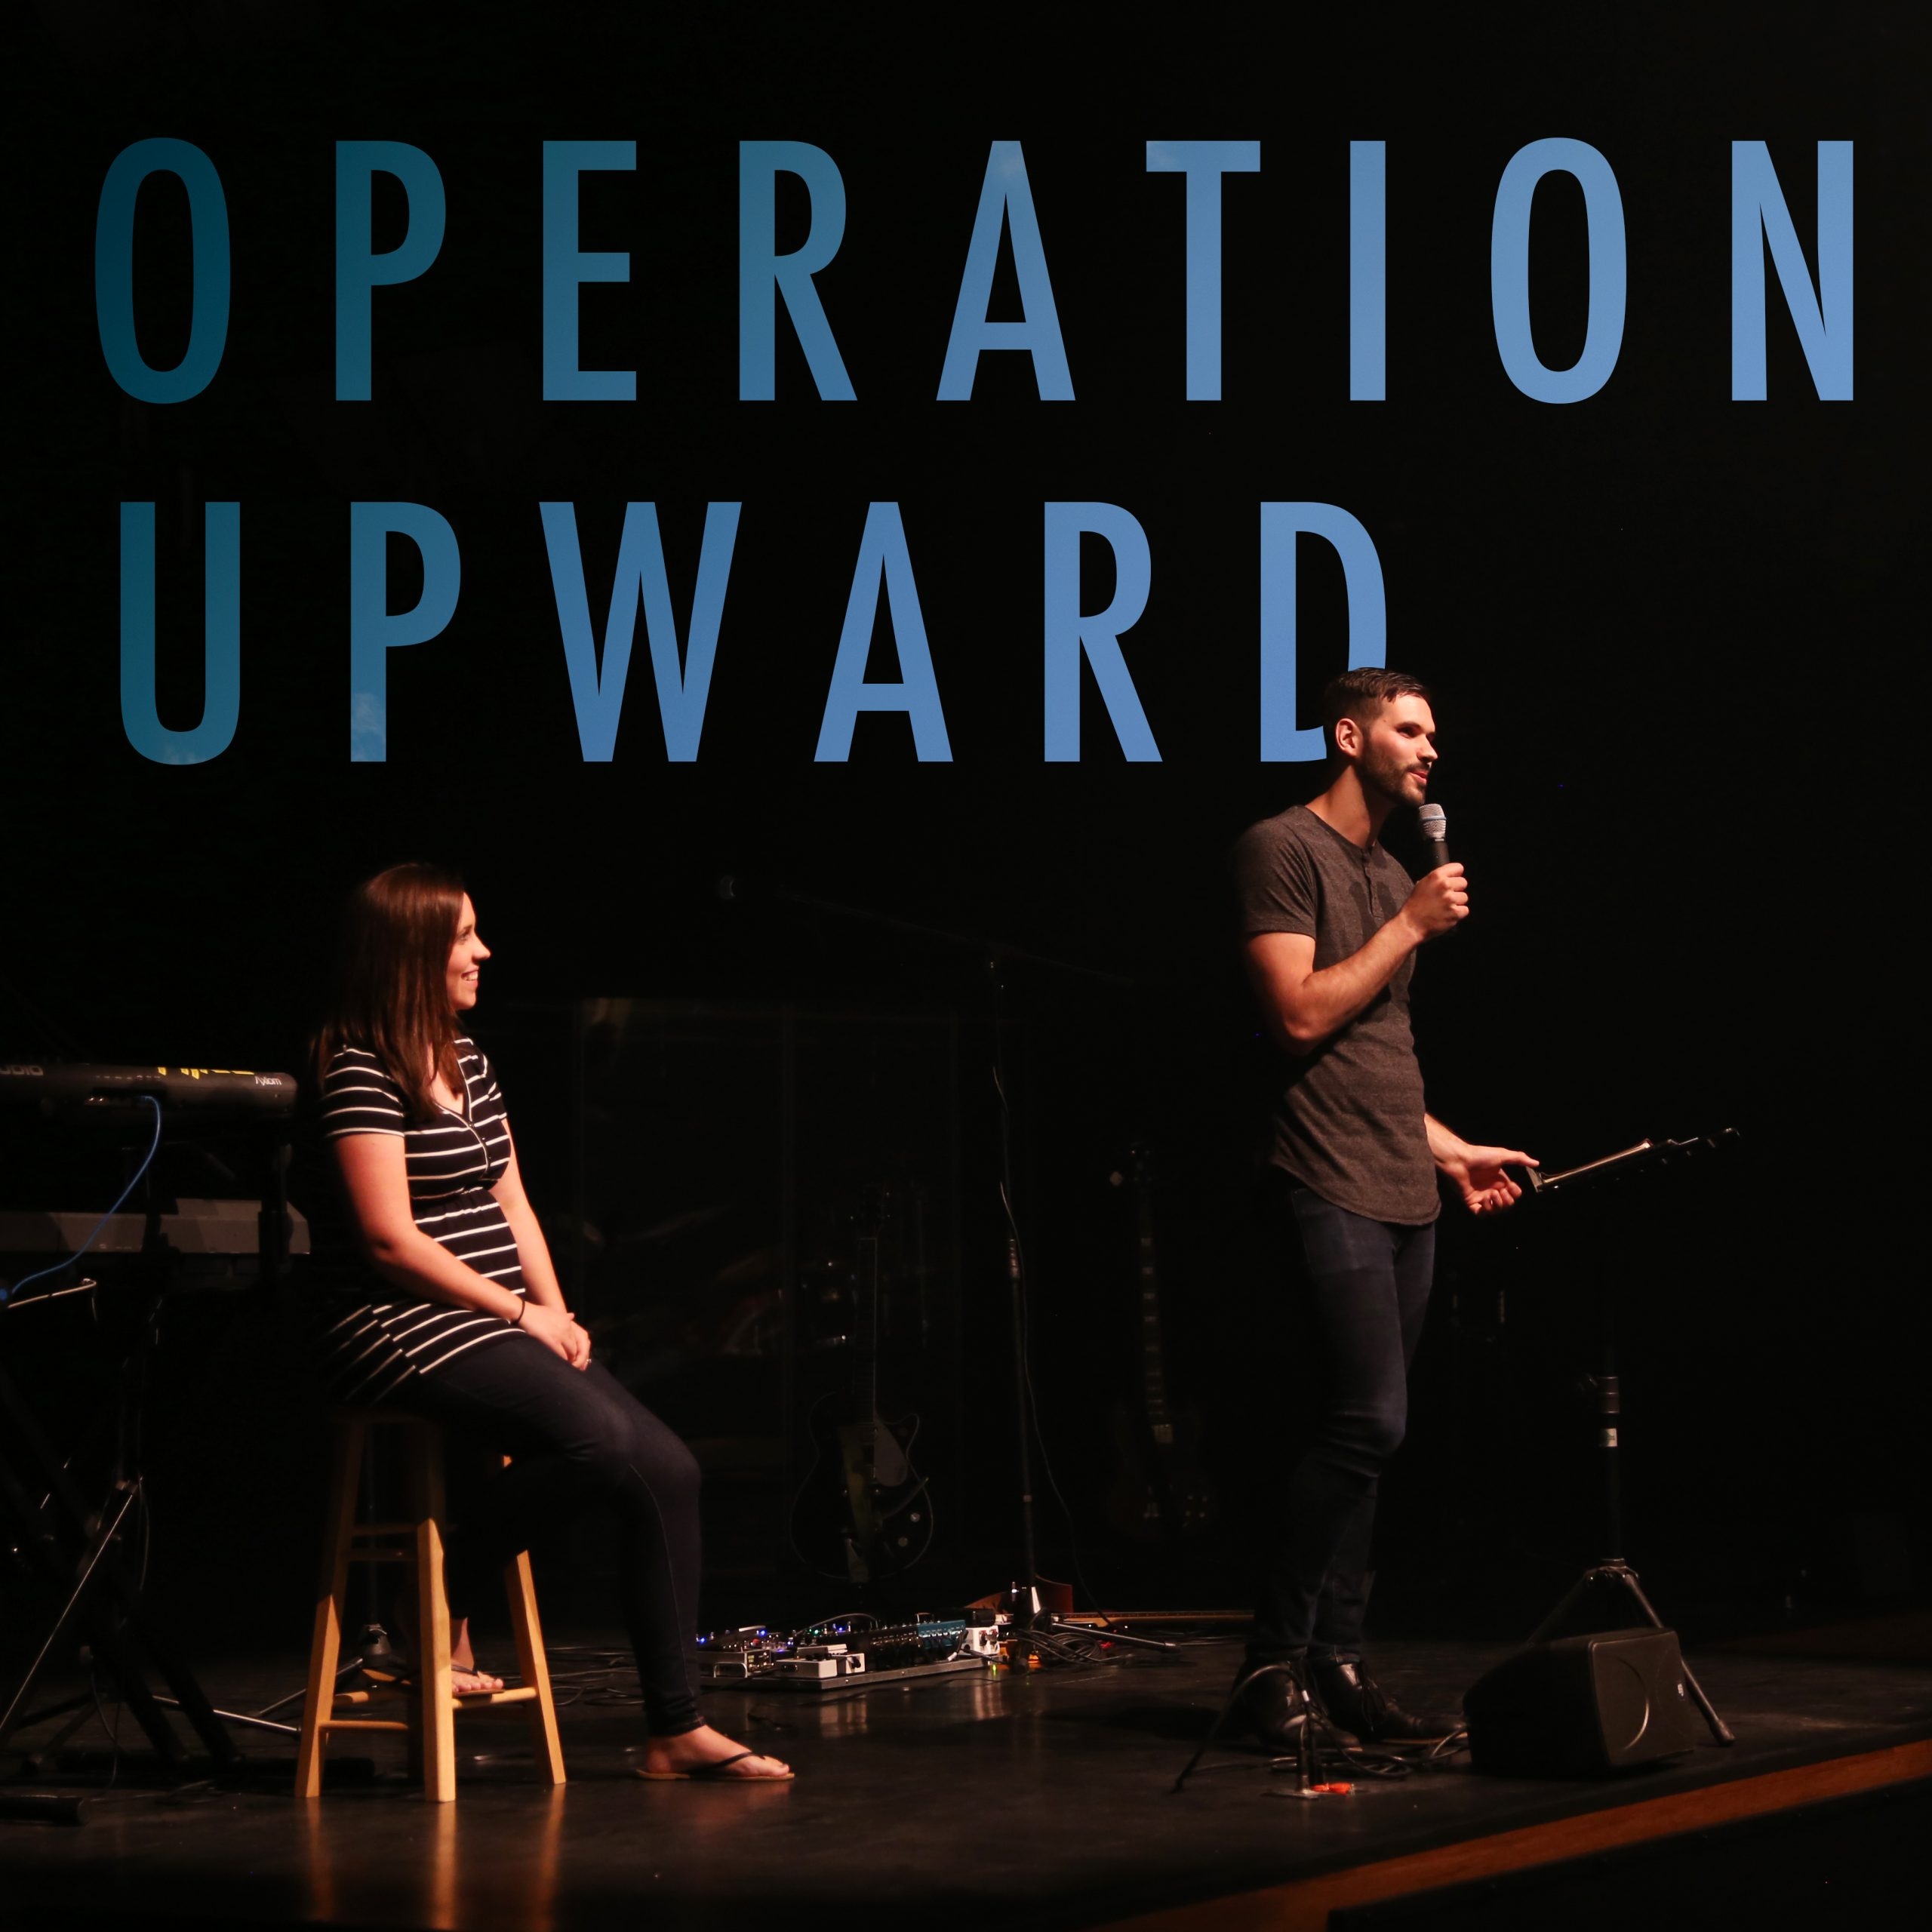 Operation Upward